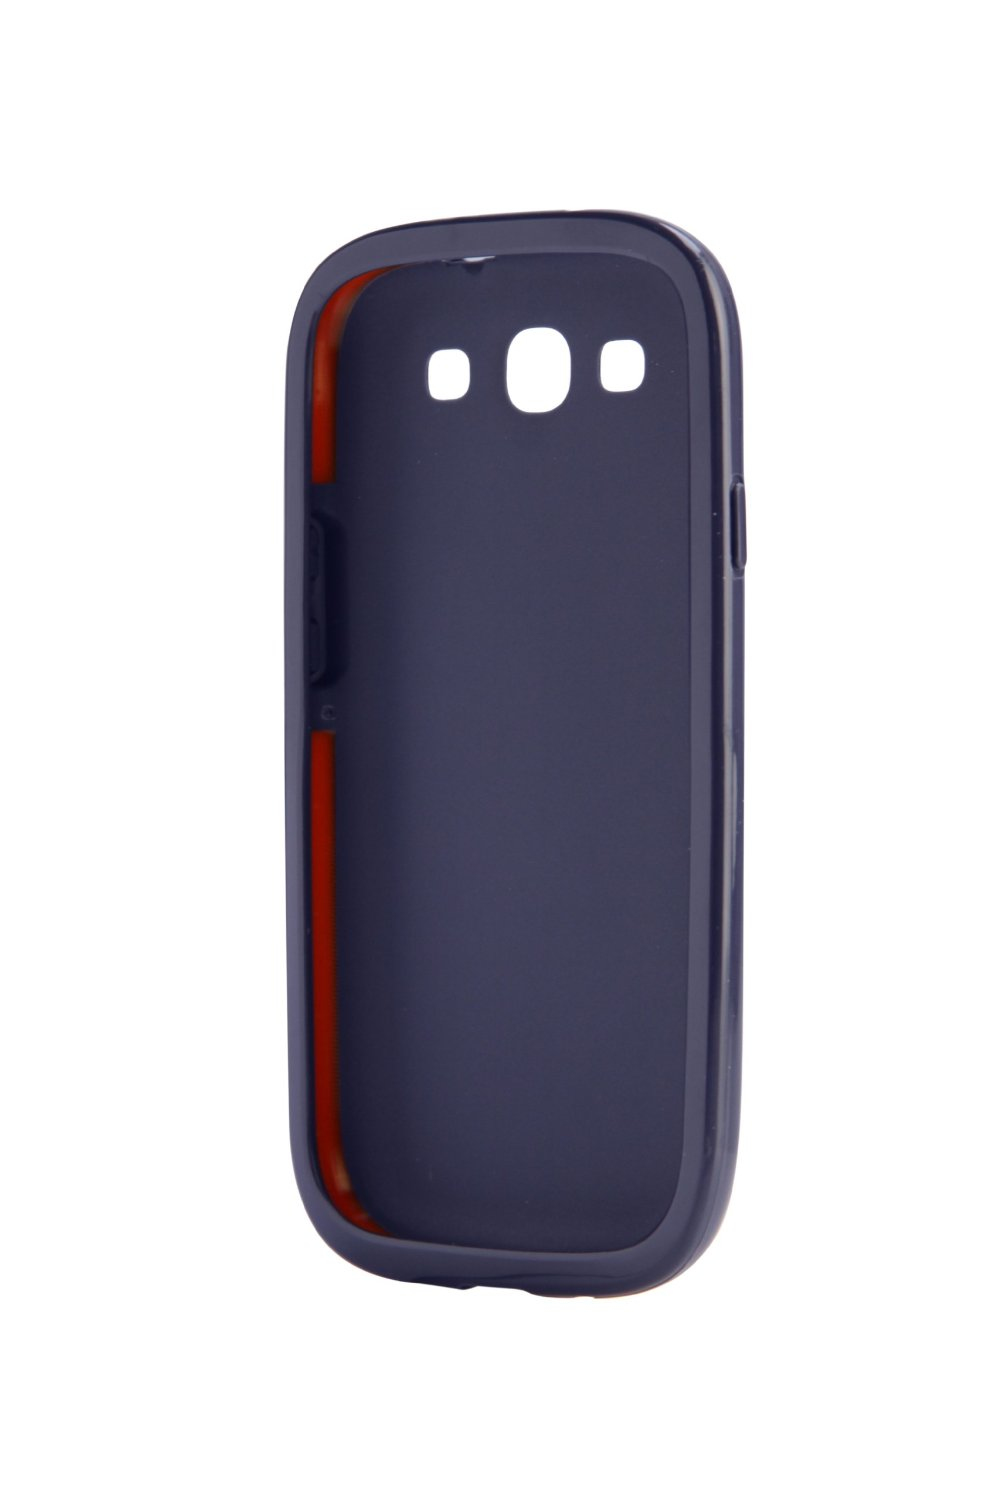 Tech21 T21-1790 mobile phone case